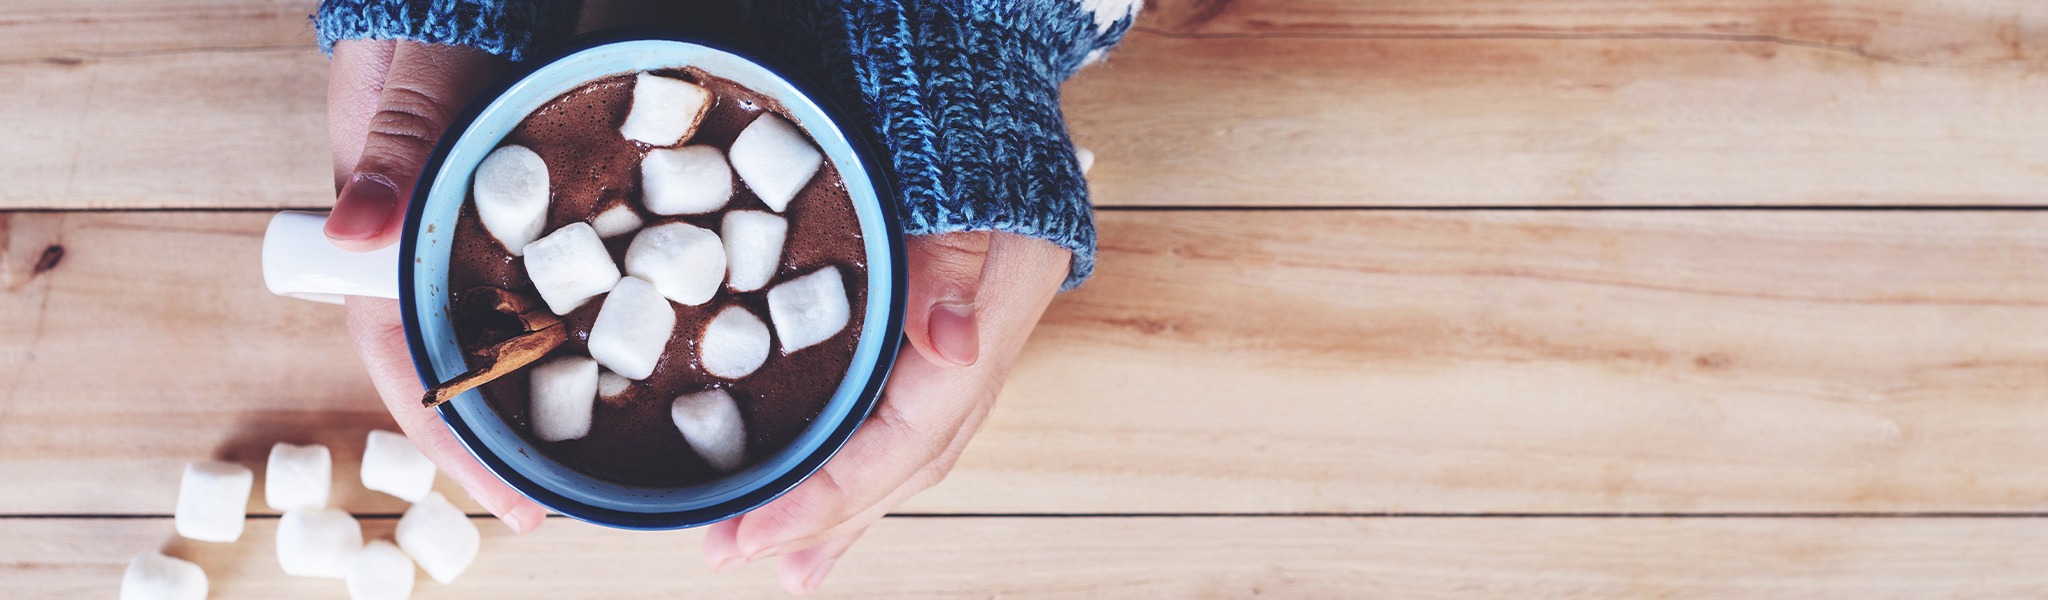 photo of a cup of hot coco being held by hands